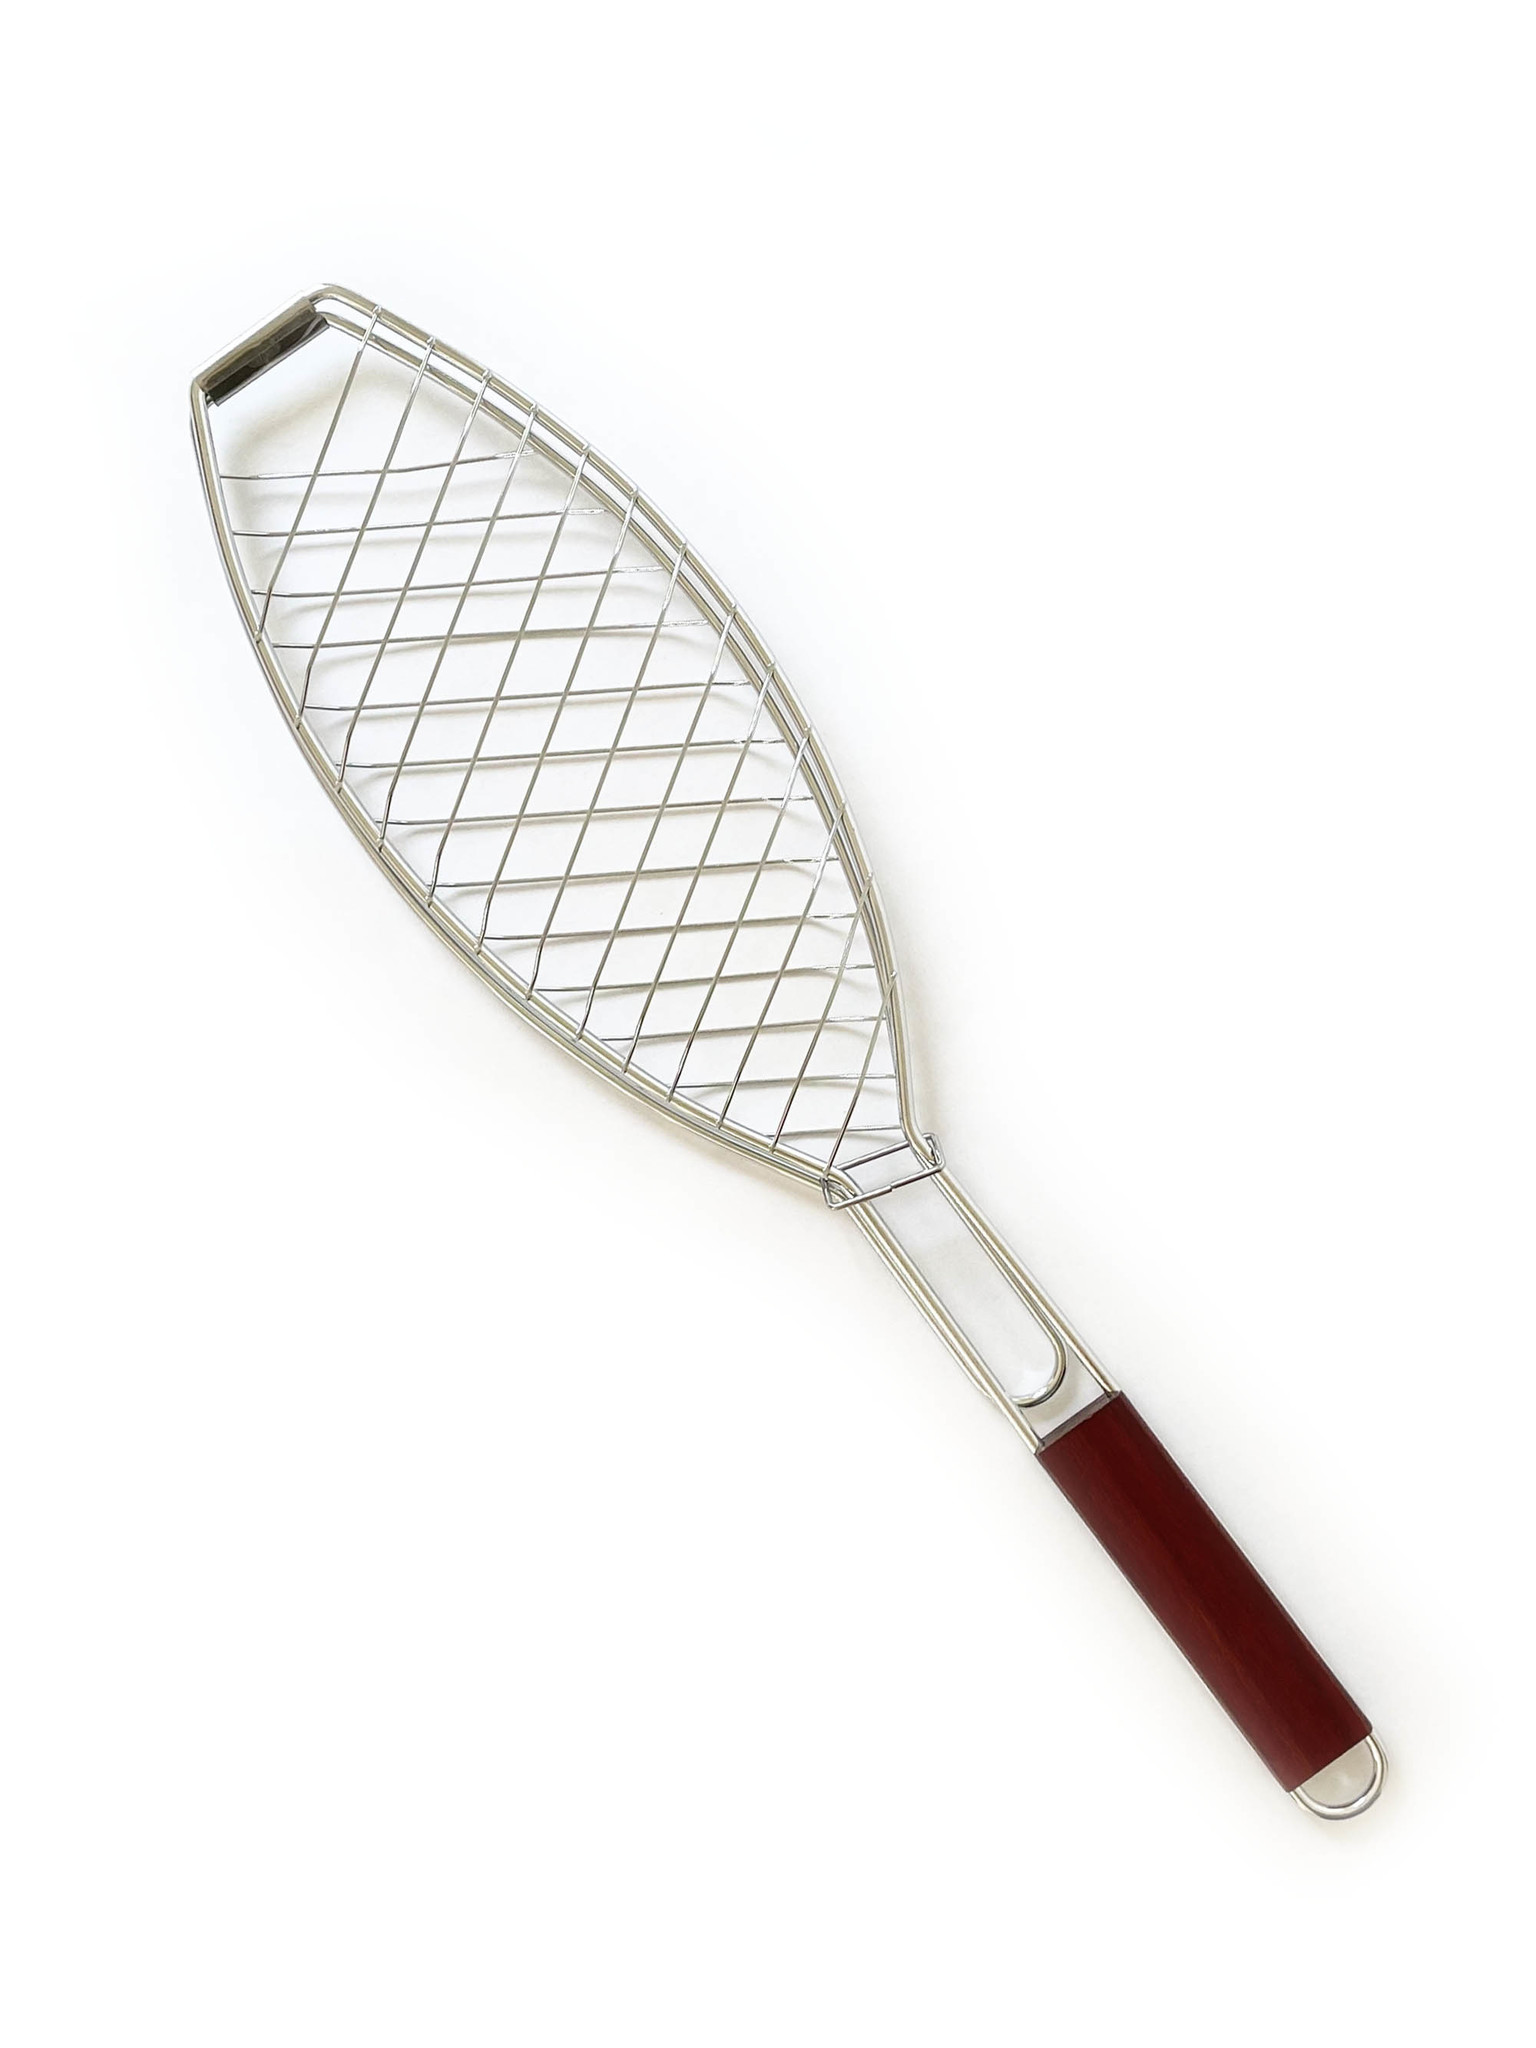 Outset Stainless BBQ Fish Basket with Rosewood Handle-1